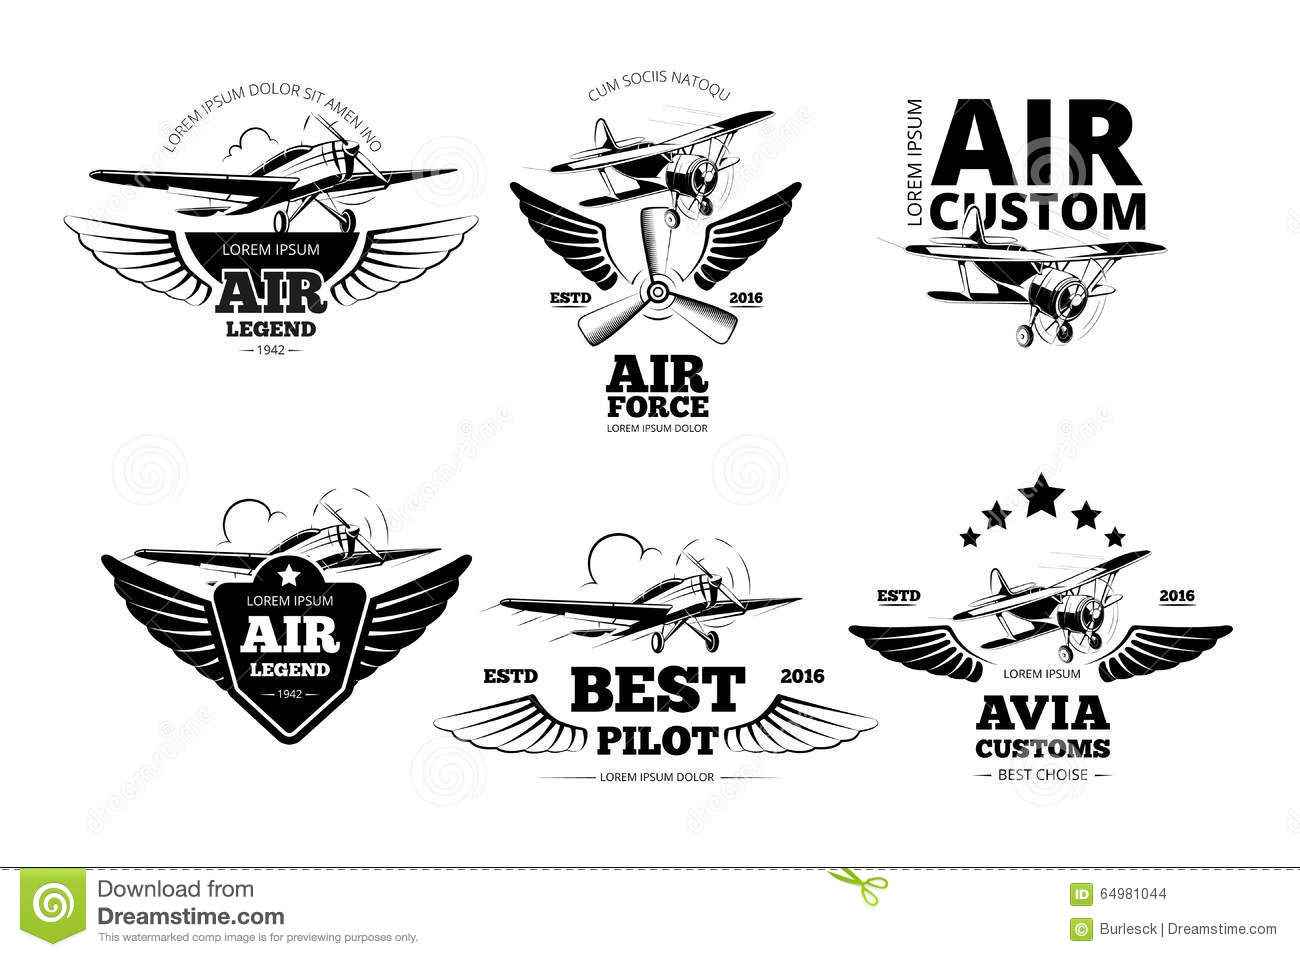 Air Force Clipart